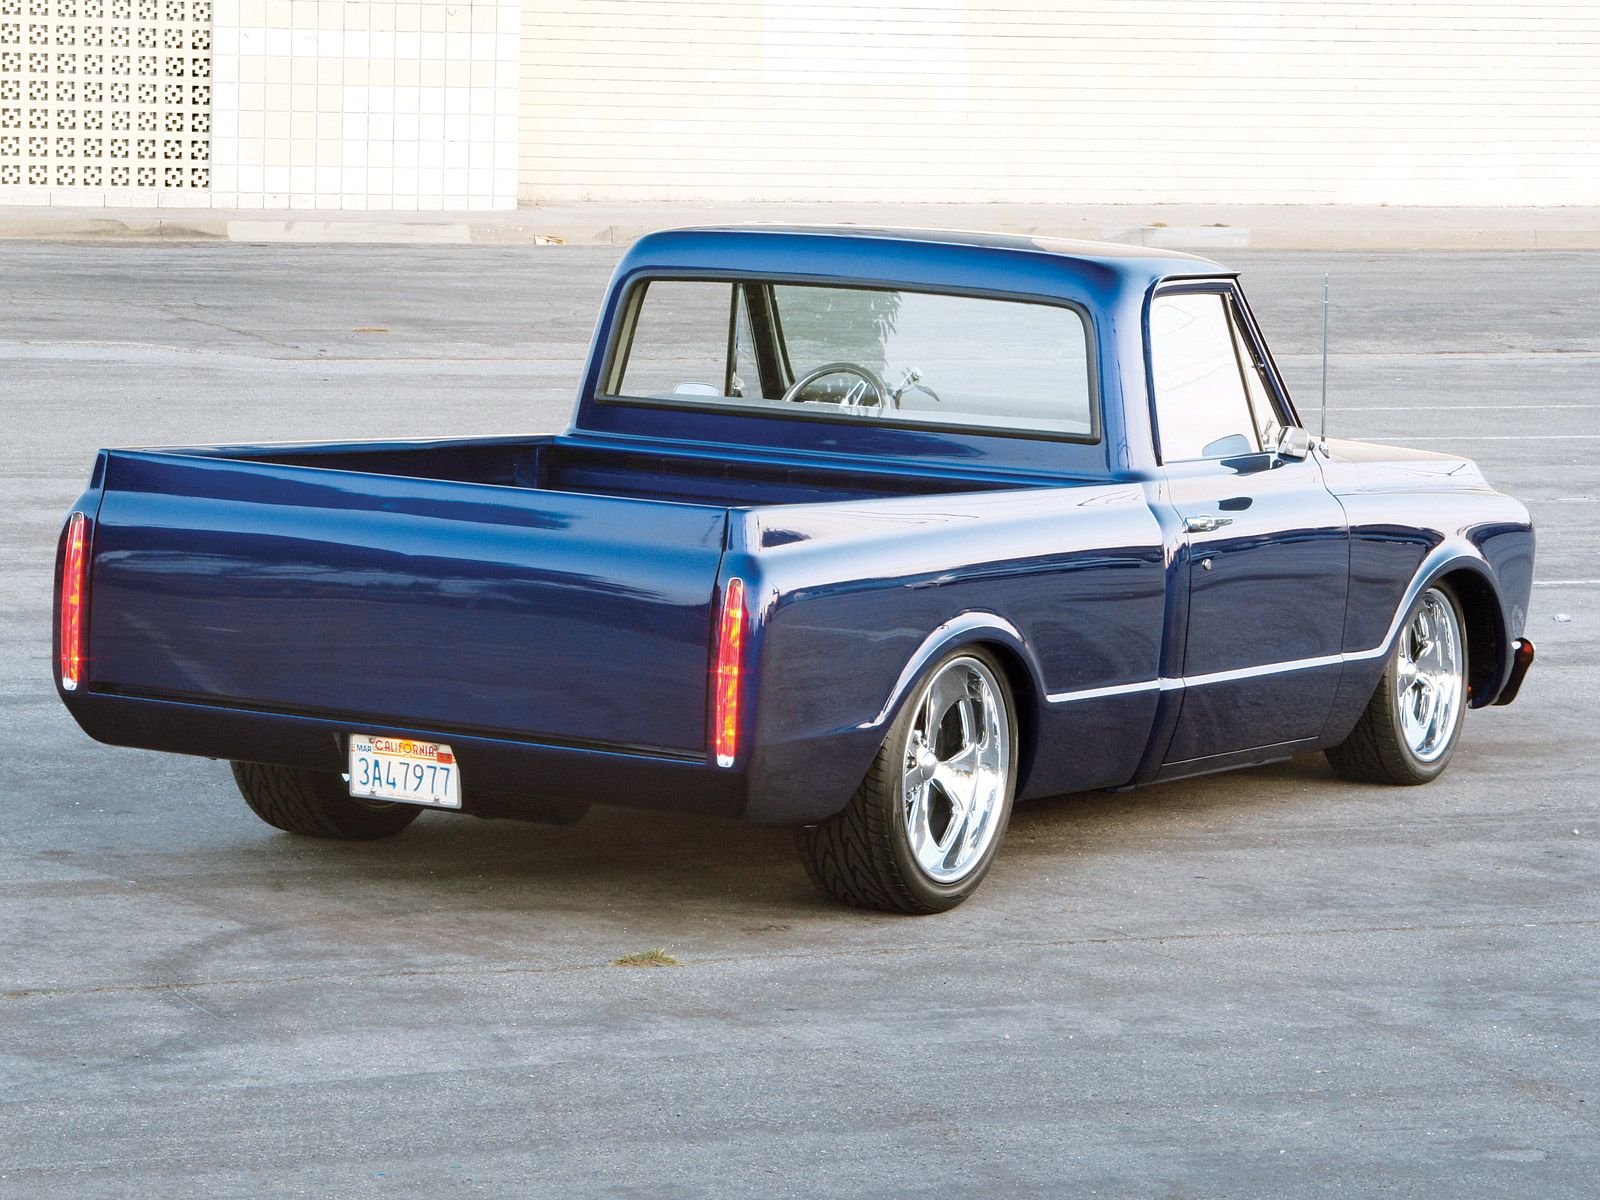 Applexsoft Sd Card Recovery Activation Code : Card Recovery 1972 chevy truck images